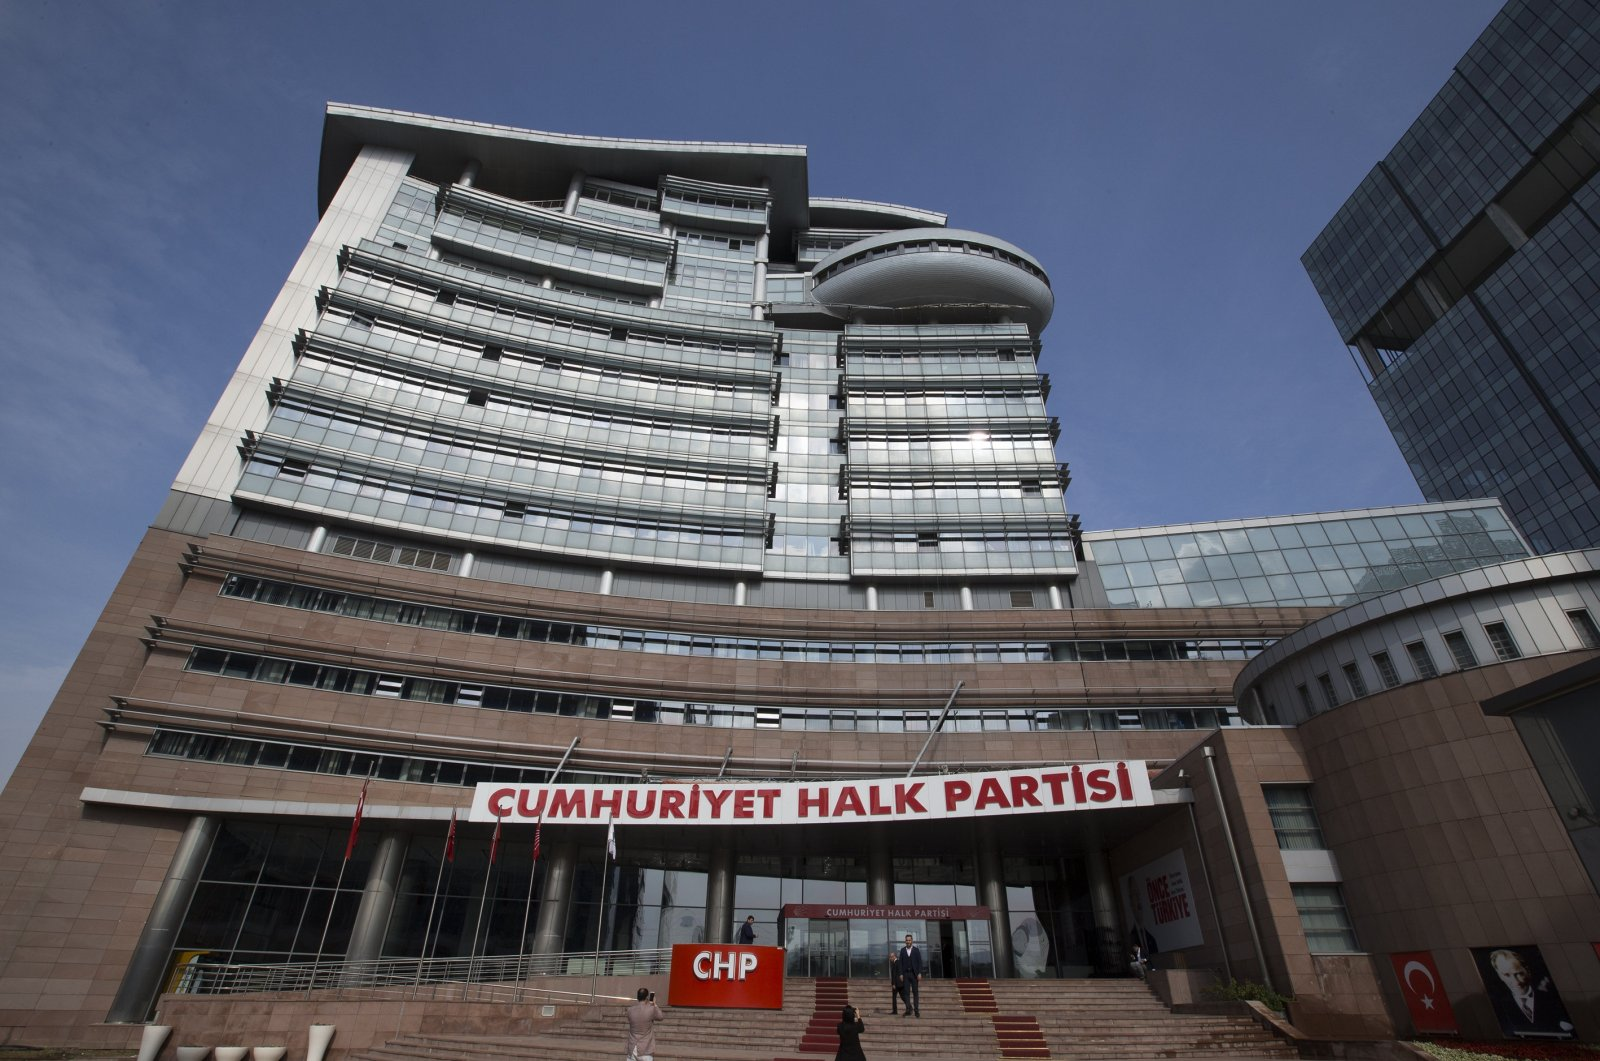 The building of CHP headquarters in Ankara is seen in this file photo taken on Feb. 18, 2019 (AA Photo)